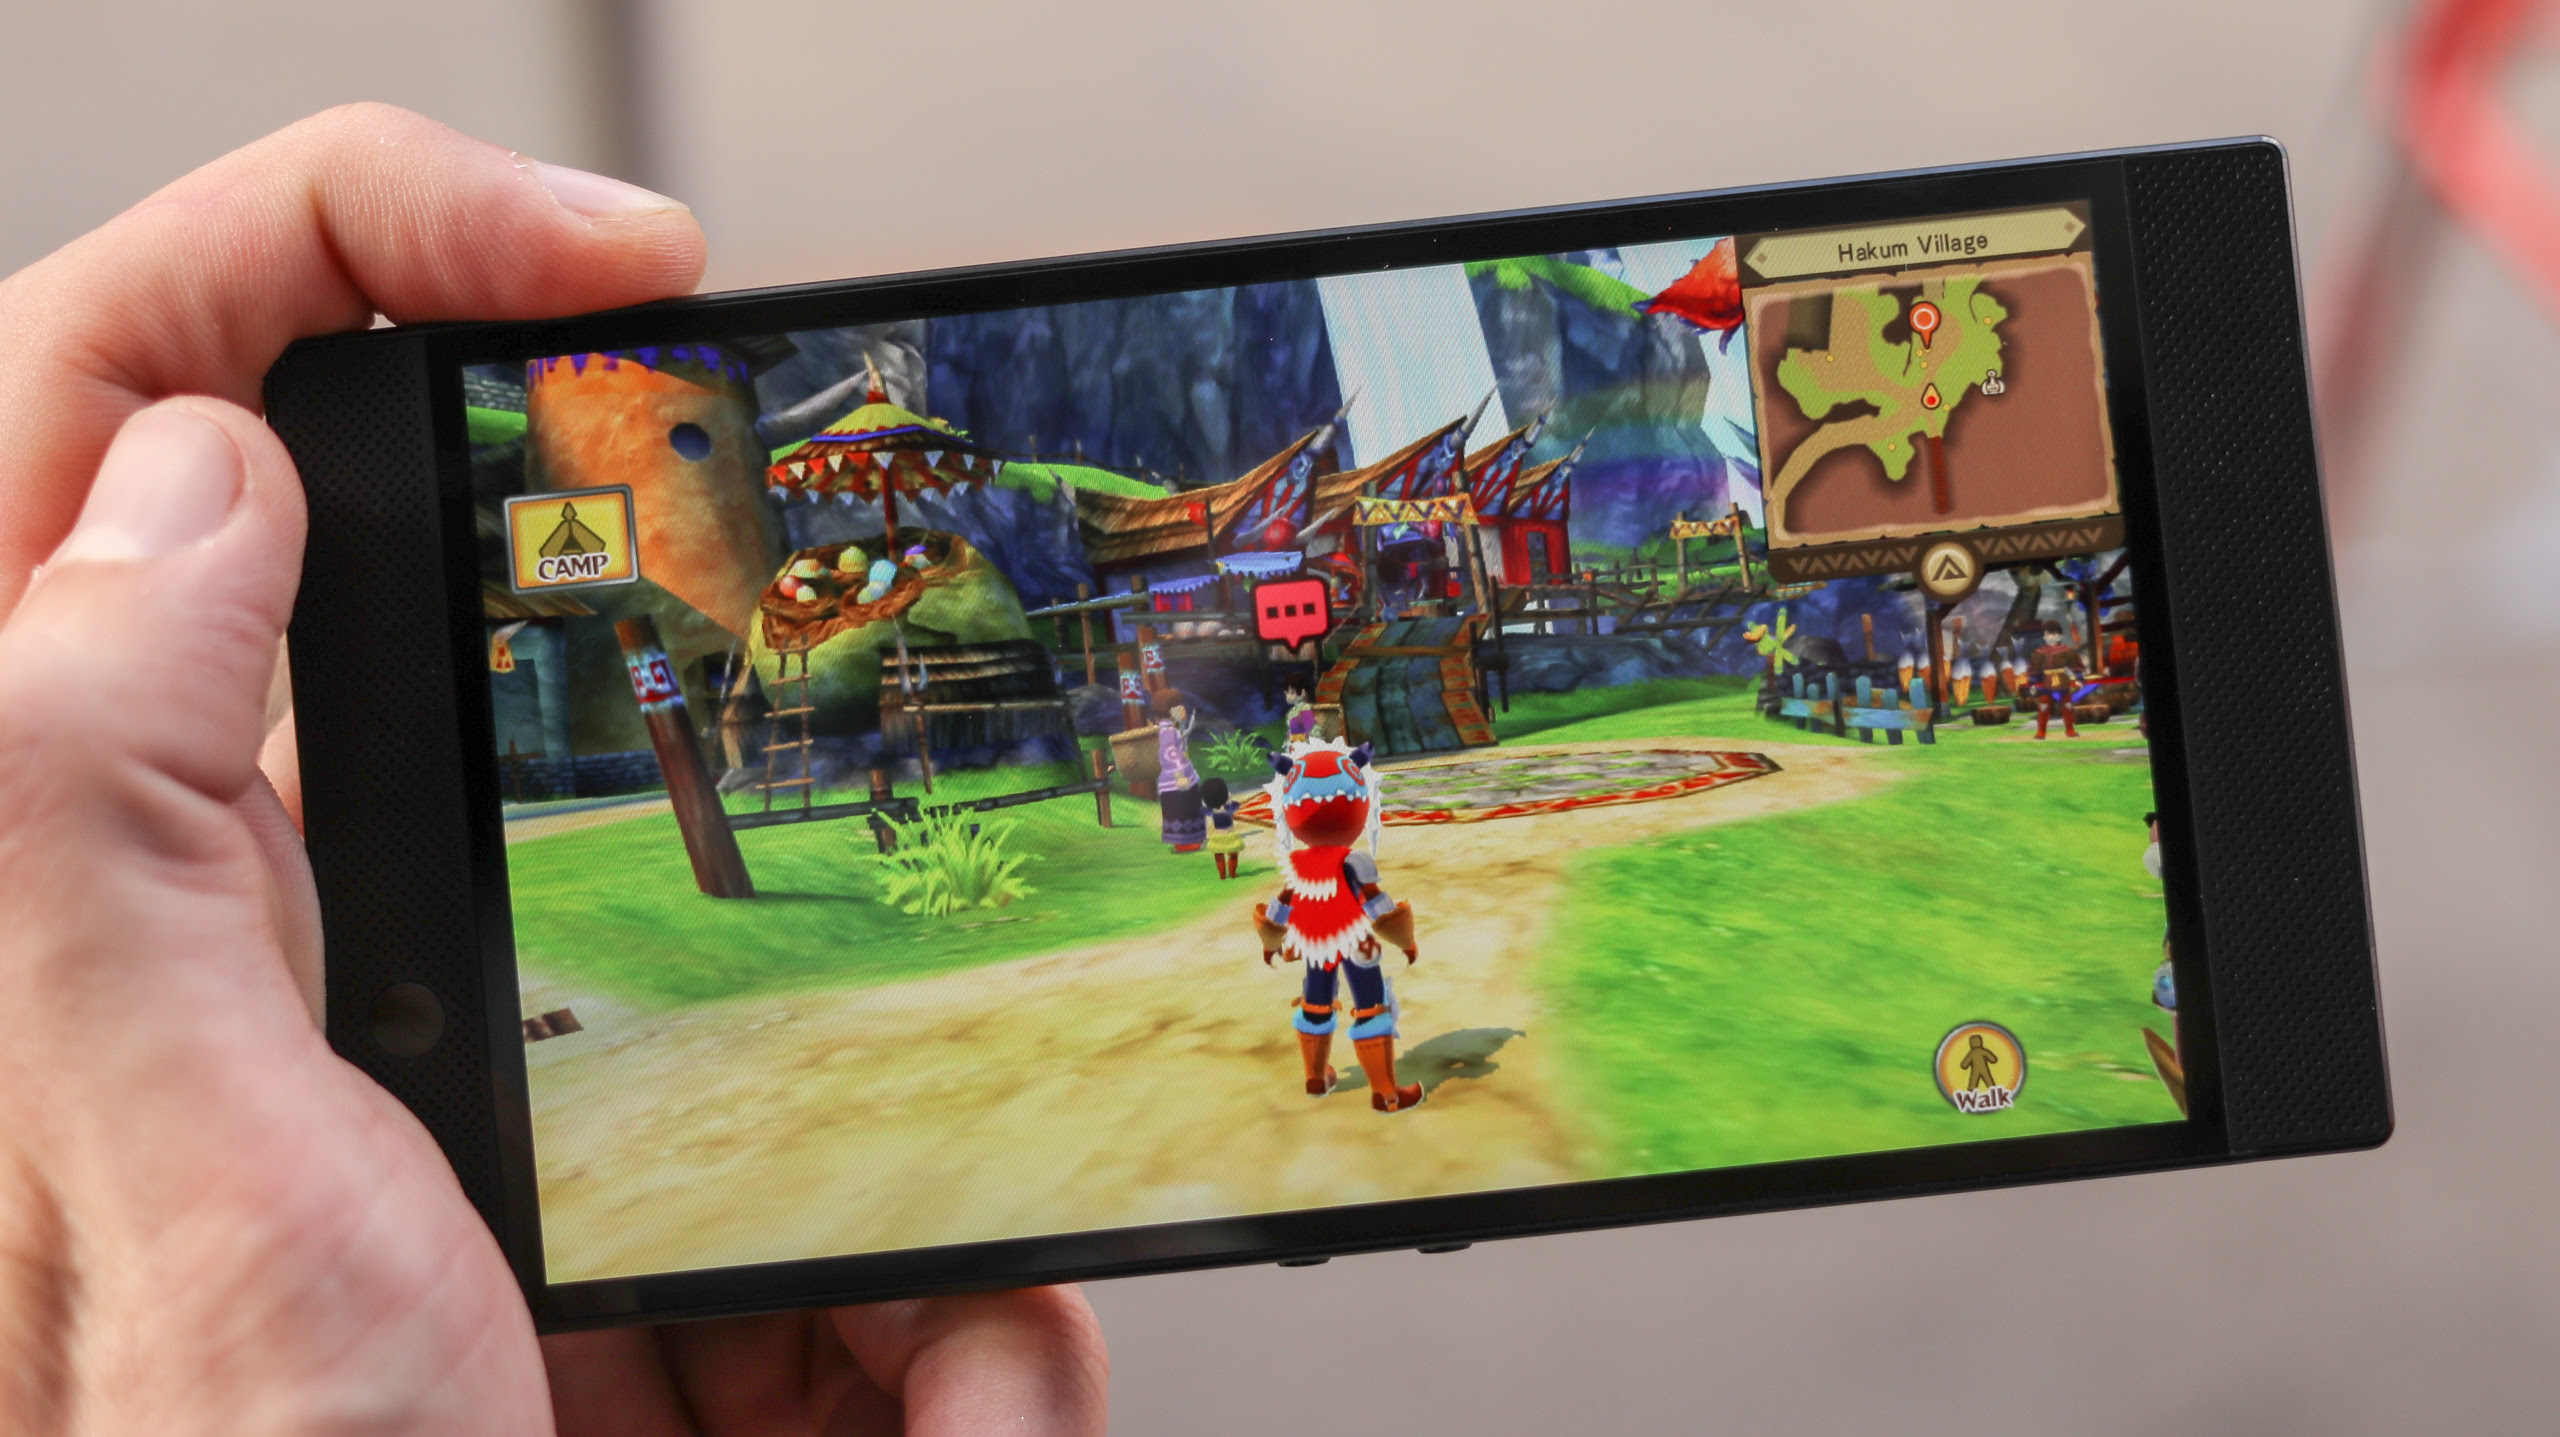 The top 10 mobile game performers